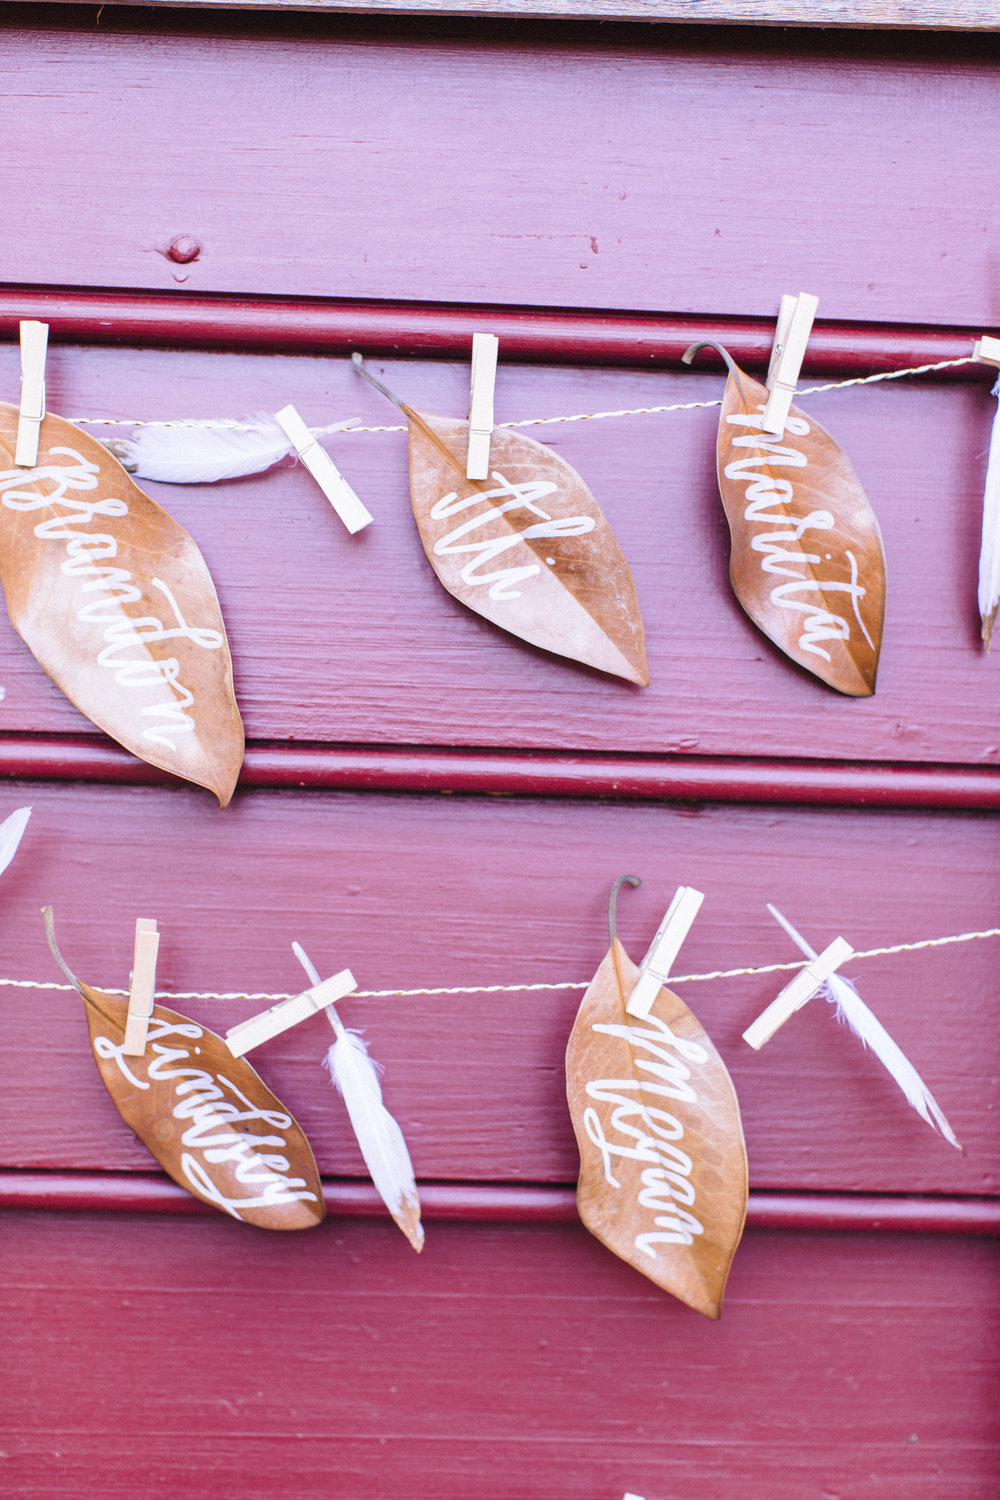 Guests names painted on magnolia leaves.